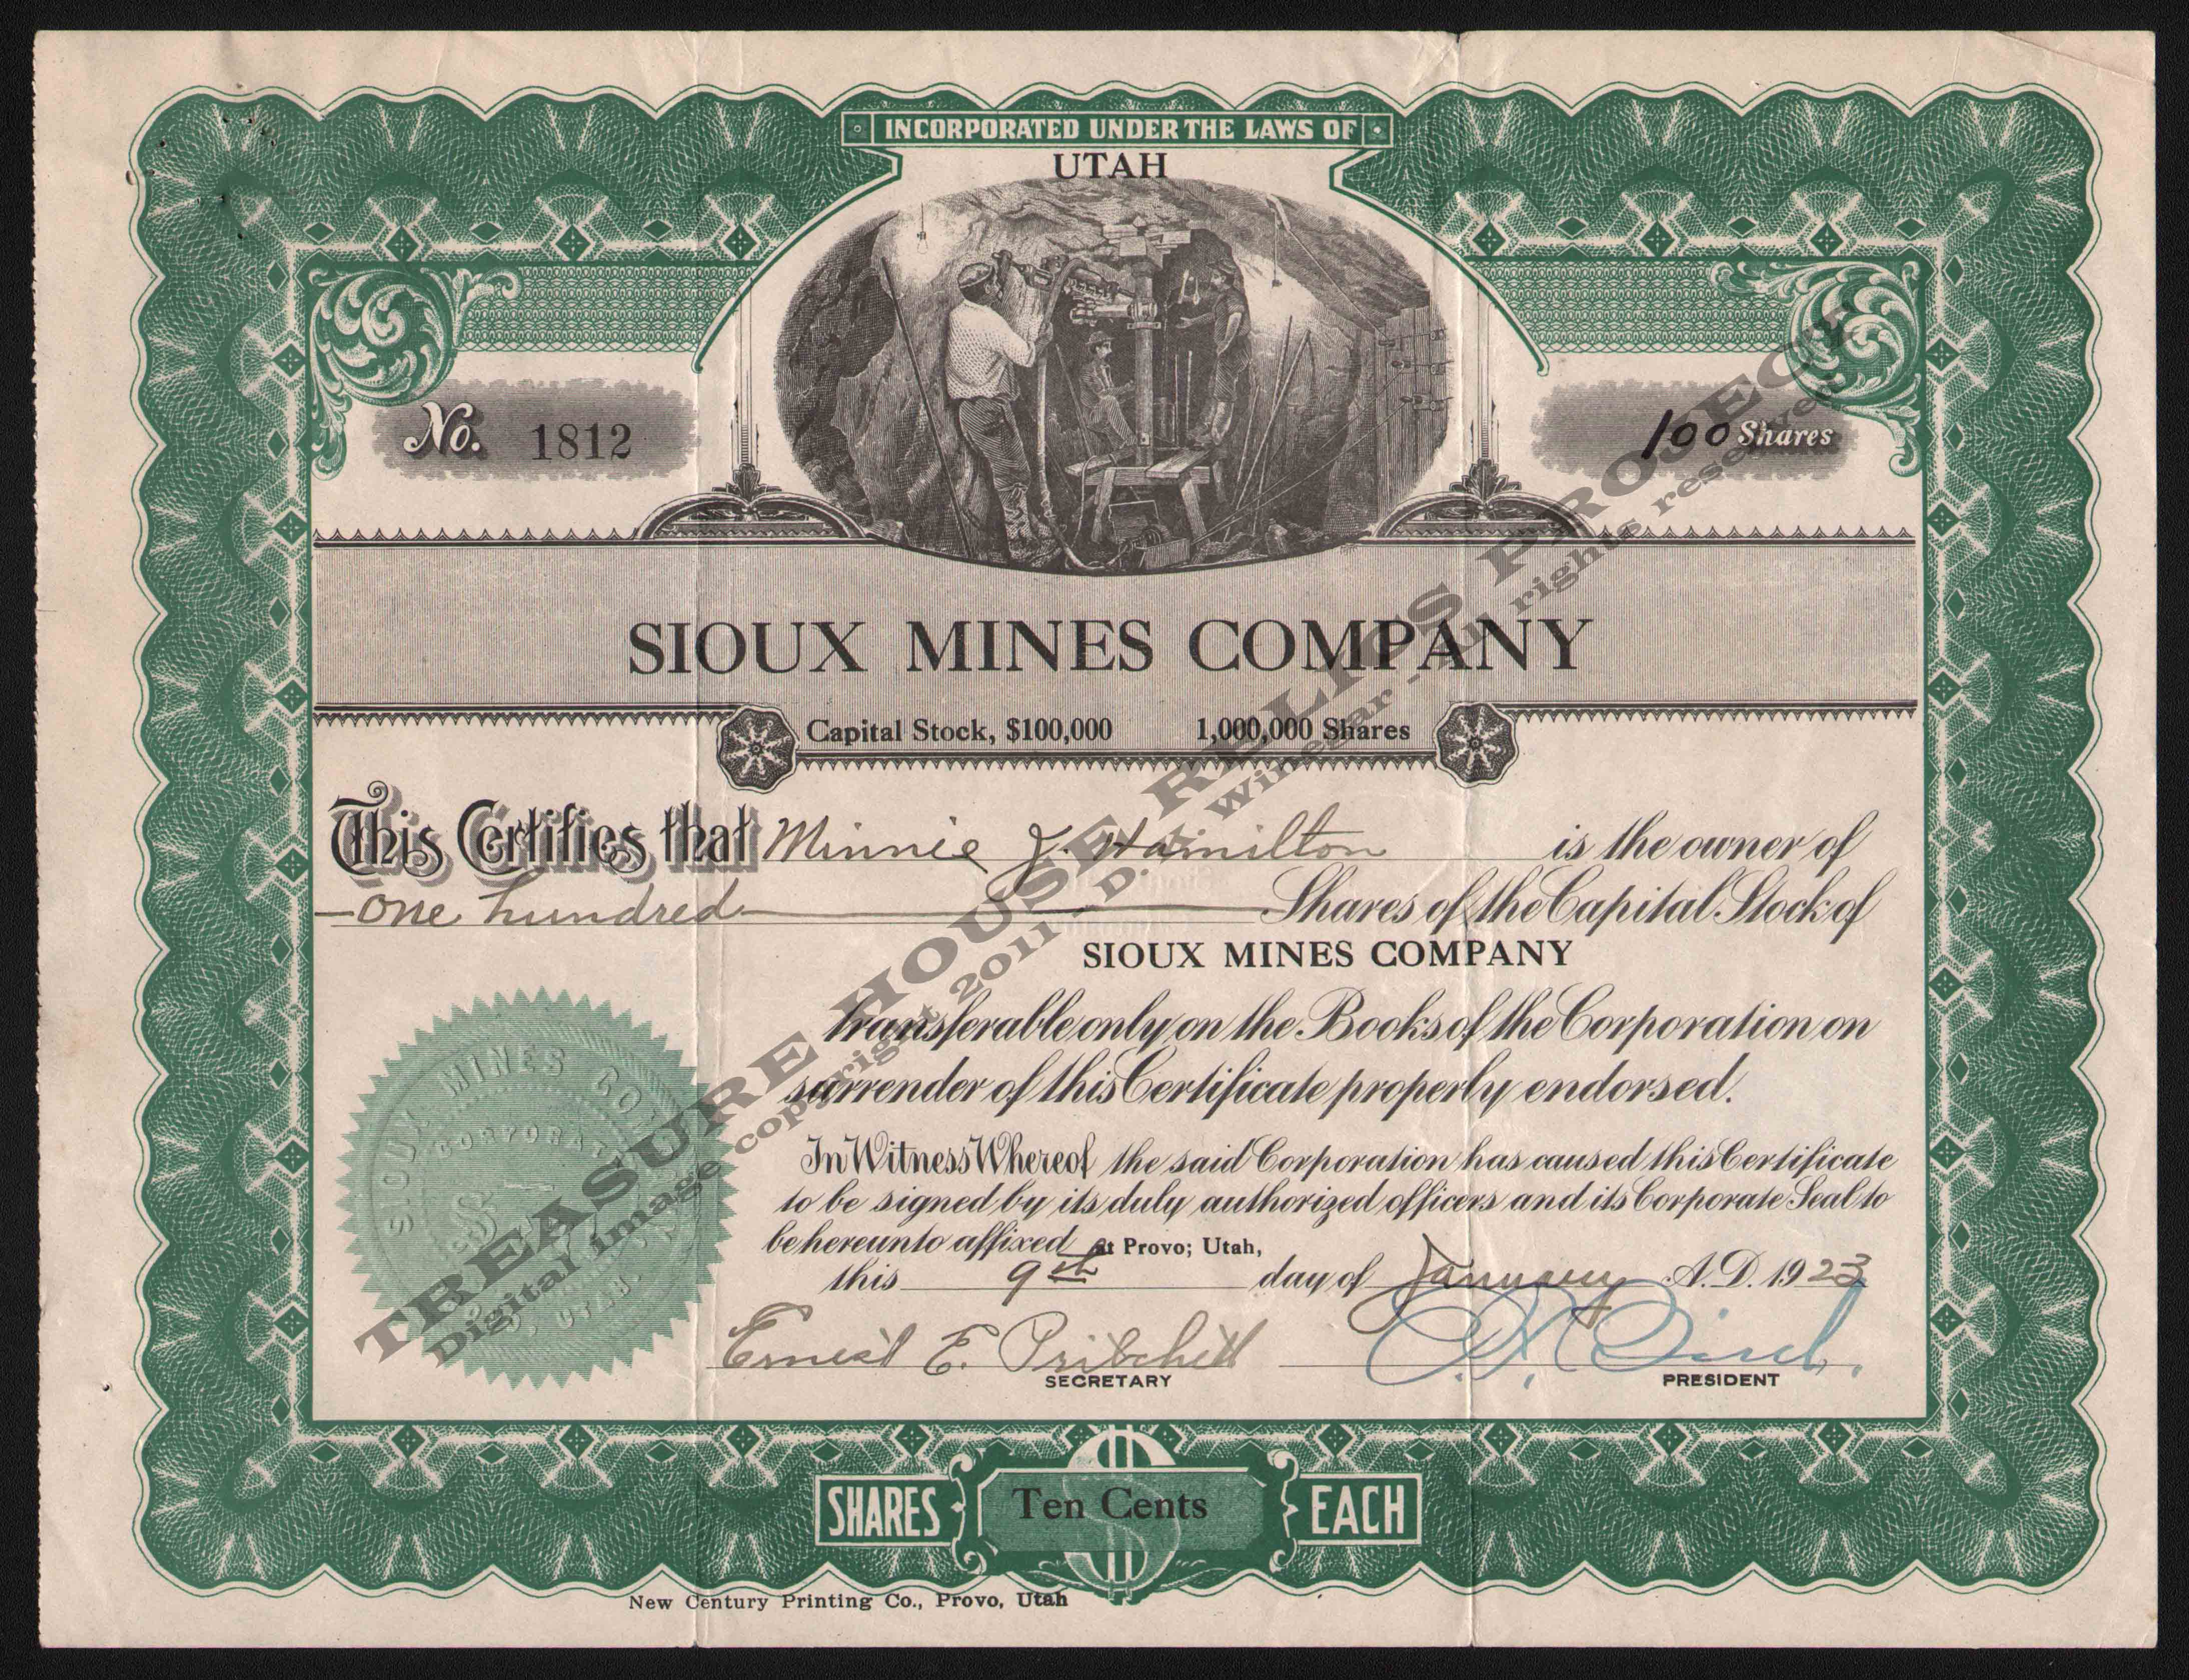 SIOUX_MINES_COMPANY_1812_1923_400_emboss.jpg